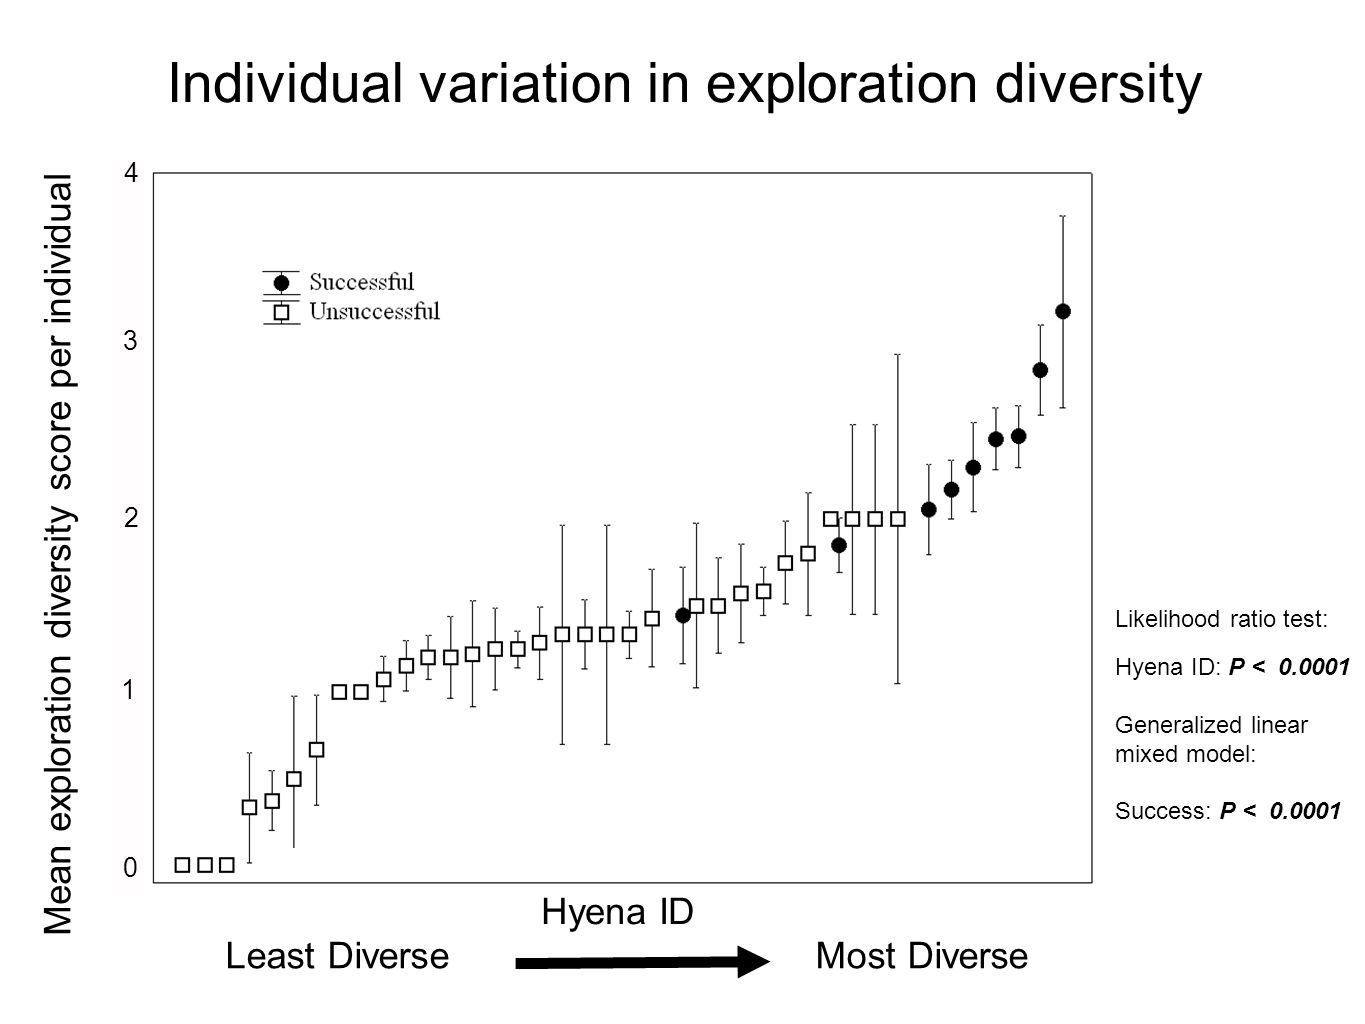 Individual variation in exploration diversity Likelihood ratio test: Hyena ID: P < 0.0001 Generalized linear mixed model: Success: P < 0.0001 Least Diverse Most Diverse Mean exploration diversity score per individual 4 3 2 1 0 Hyena ID